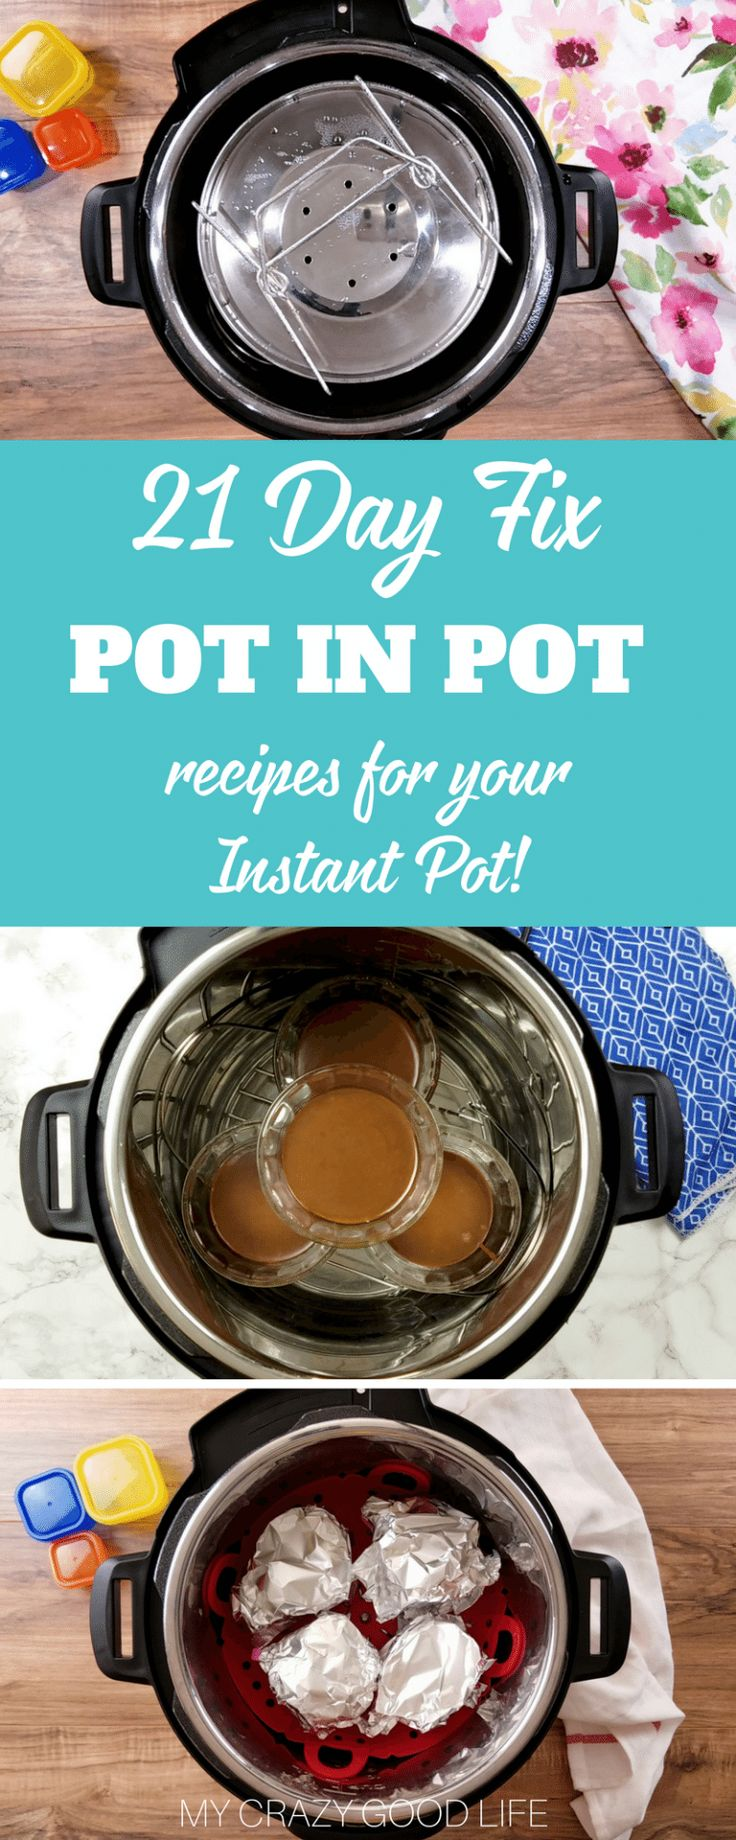 Making 21 Day Fix Instant Pot recipes is one of my favorite ways to save time and stay healthy. These pot in pot recipes are a great way to multitask and make great use of your Intent Pot!#instantpot #21dayfix #recipes